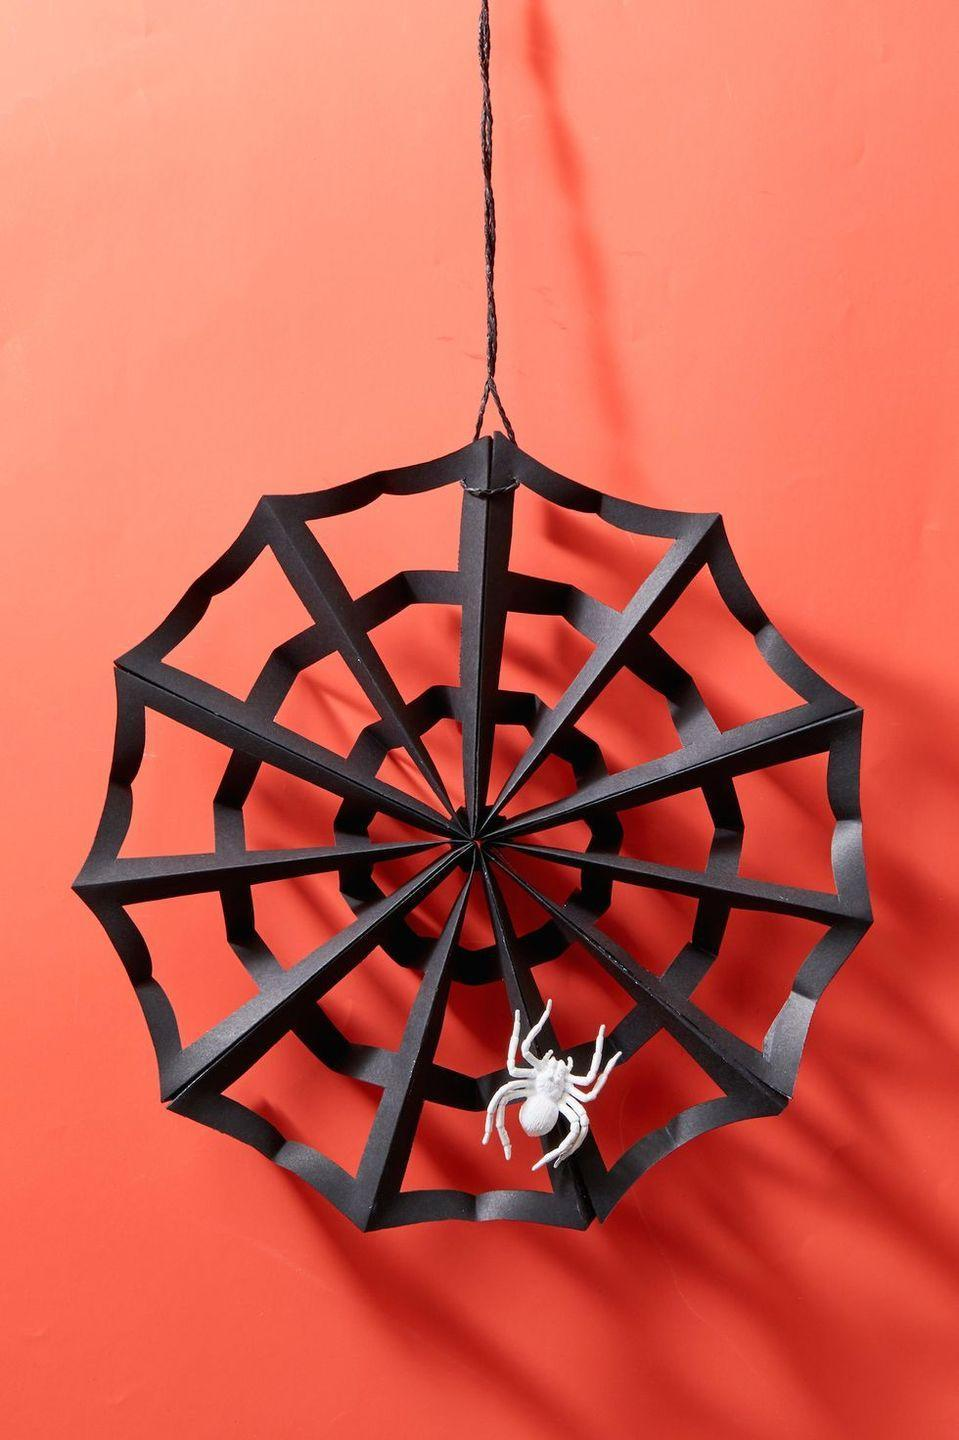 "<p>Like a spooky paper snowflake this wreath is fashioned from black craft paper.<br></p><p><strong>Make the Wreath:</strong> Fold 2 sheets of black paper accordion-style (about 1.5"" inch folds), and then fold each in half lengthwise so you have two segments. Cut the top of the fold diagonally so you'll have a pointed end when it's unfolded. Then, cut three rectangles out of the paper, about half an inch apart, on each part of the segment. Once you have folded and cut both sheets of paper, tie them together tightly at their center folds. Take each loose edge of folded paper and using a glue stick, attach it to the end next to it. You'll see the paper will start to open up like a web! Attach a faux spider with hot glue and hang with black twine.</p><p><a class=""link rapid-noclick-resp"" href=""https://www.amazon.com/SunWorks-Construction-Paper-Black-Sheets/dp/B002LARR7Q/ref=sr_1_12?tag=syn-yahoo-20&ascsubtag=%5Bartid%7C10050.g.22350299%5Bsrc%7Cyahoo-us"" rel=""nofollow noopener"" target=""_blank"" data-ylk=""slk:SHOP BLACK CRAFT PAPER"">SHOP BLACK CRAFT PAPER</a></p>"